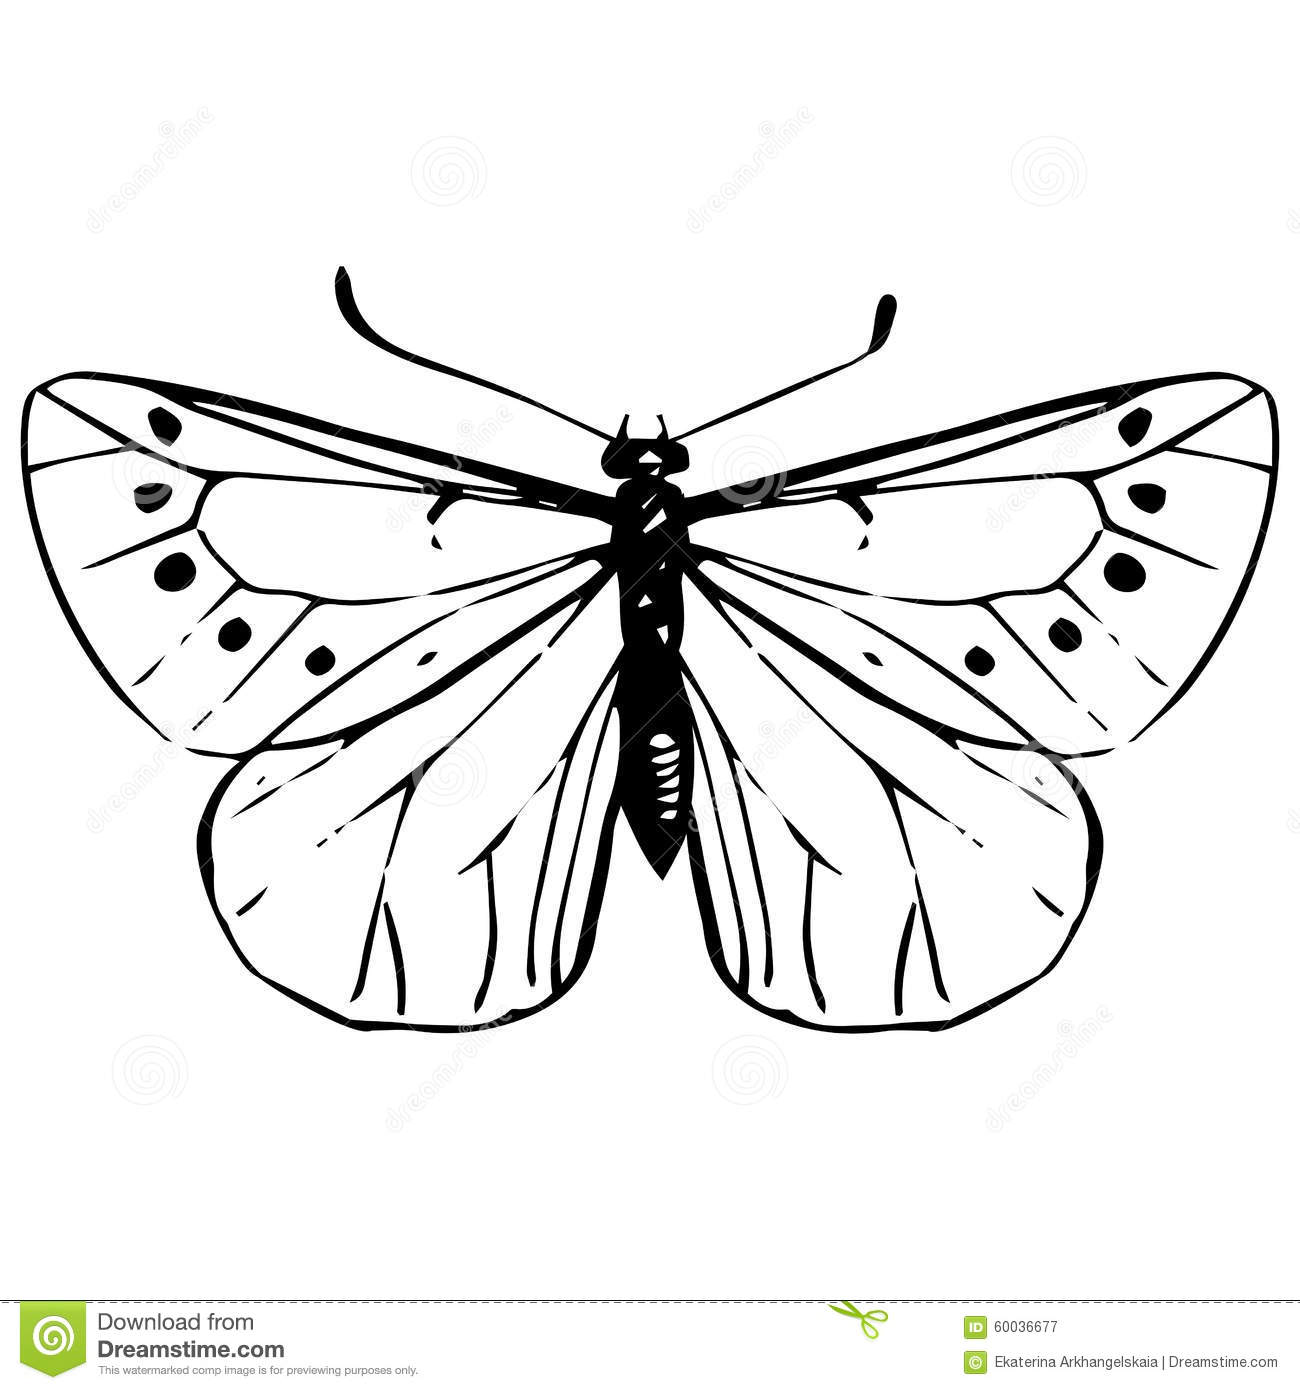 Drawing Vector Lines In Photo : Hand drawn butterfly stock vector image of spring linear